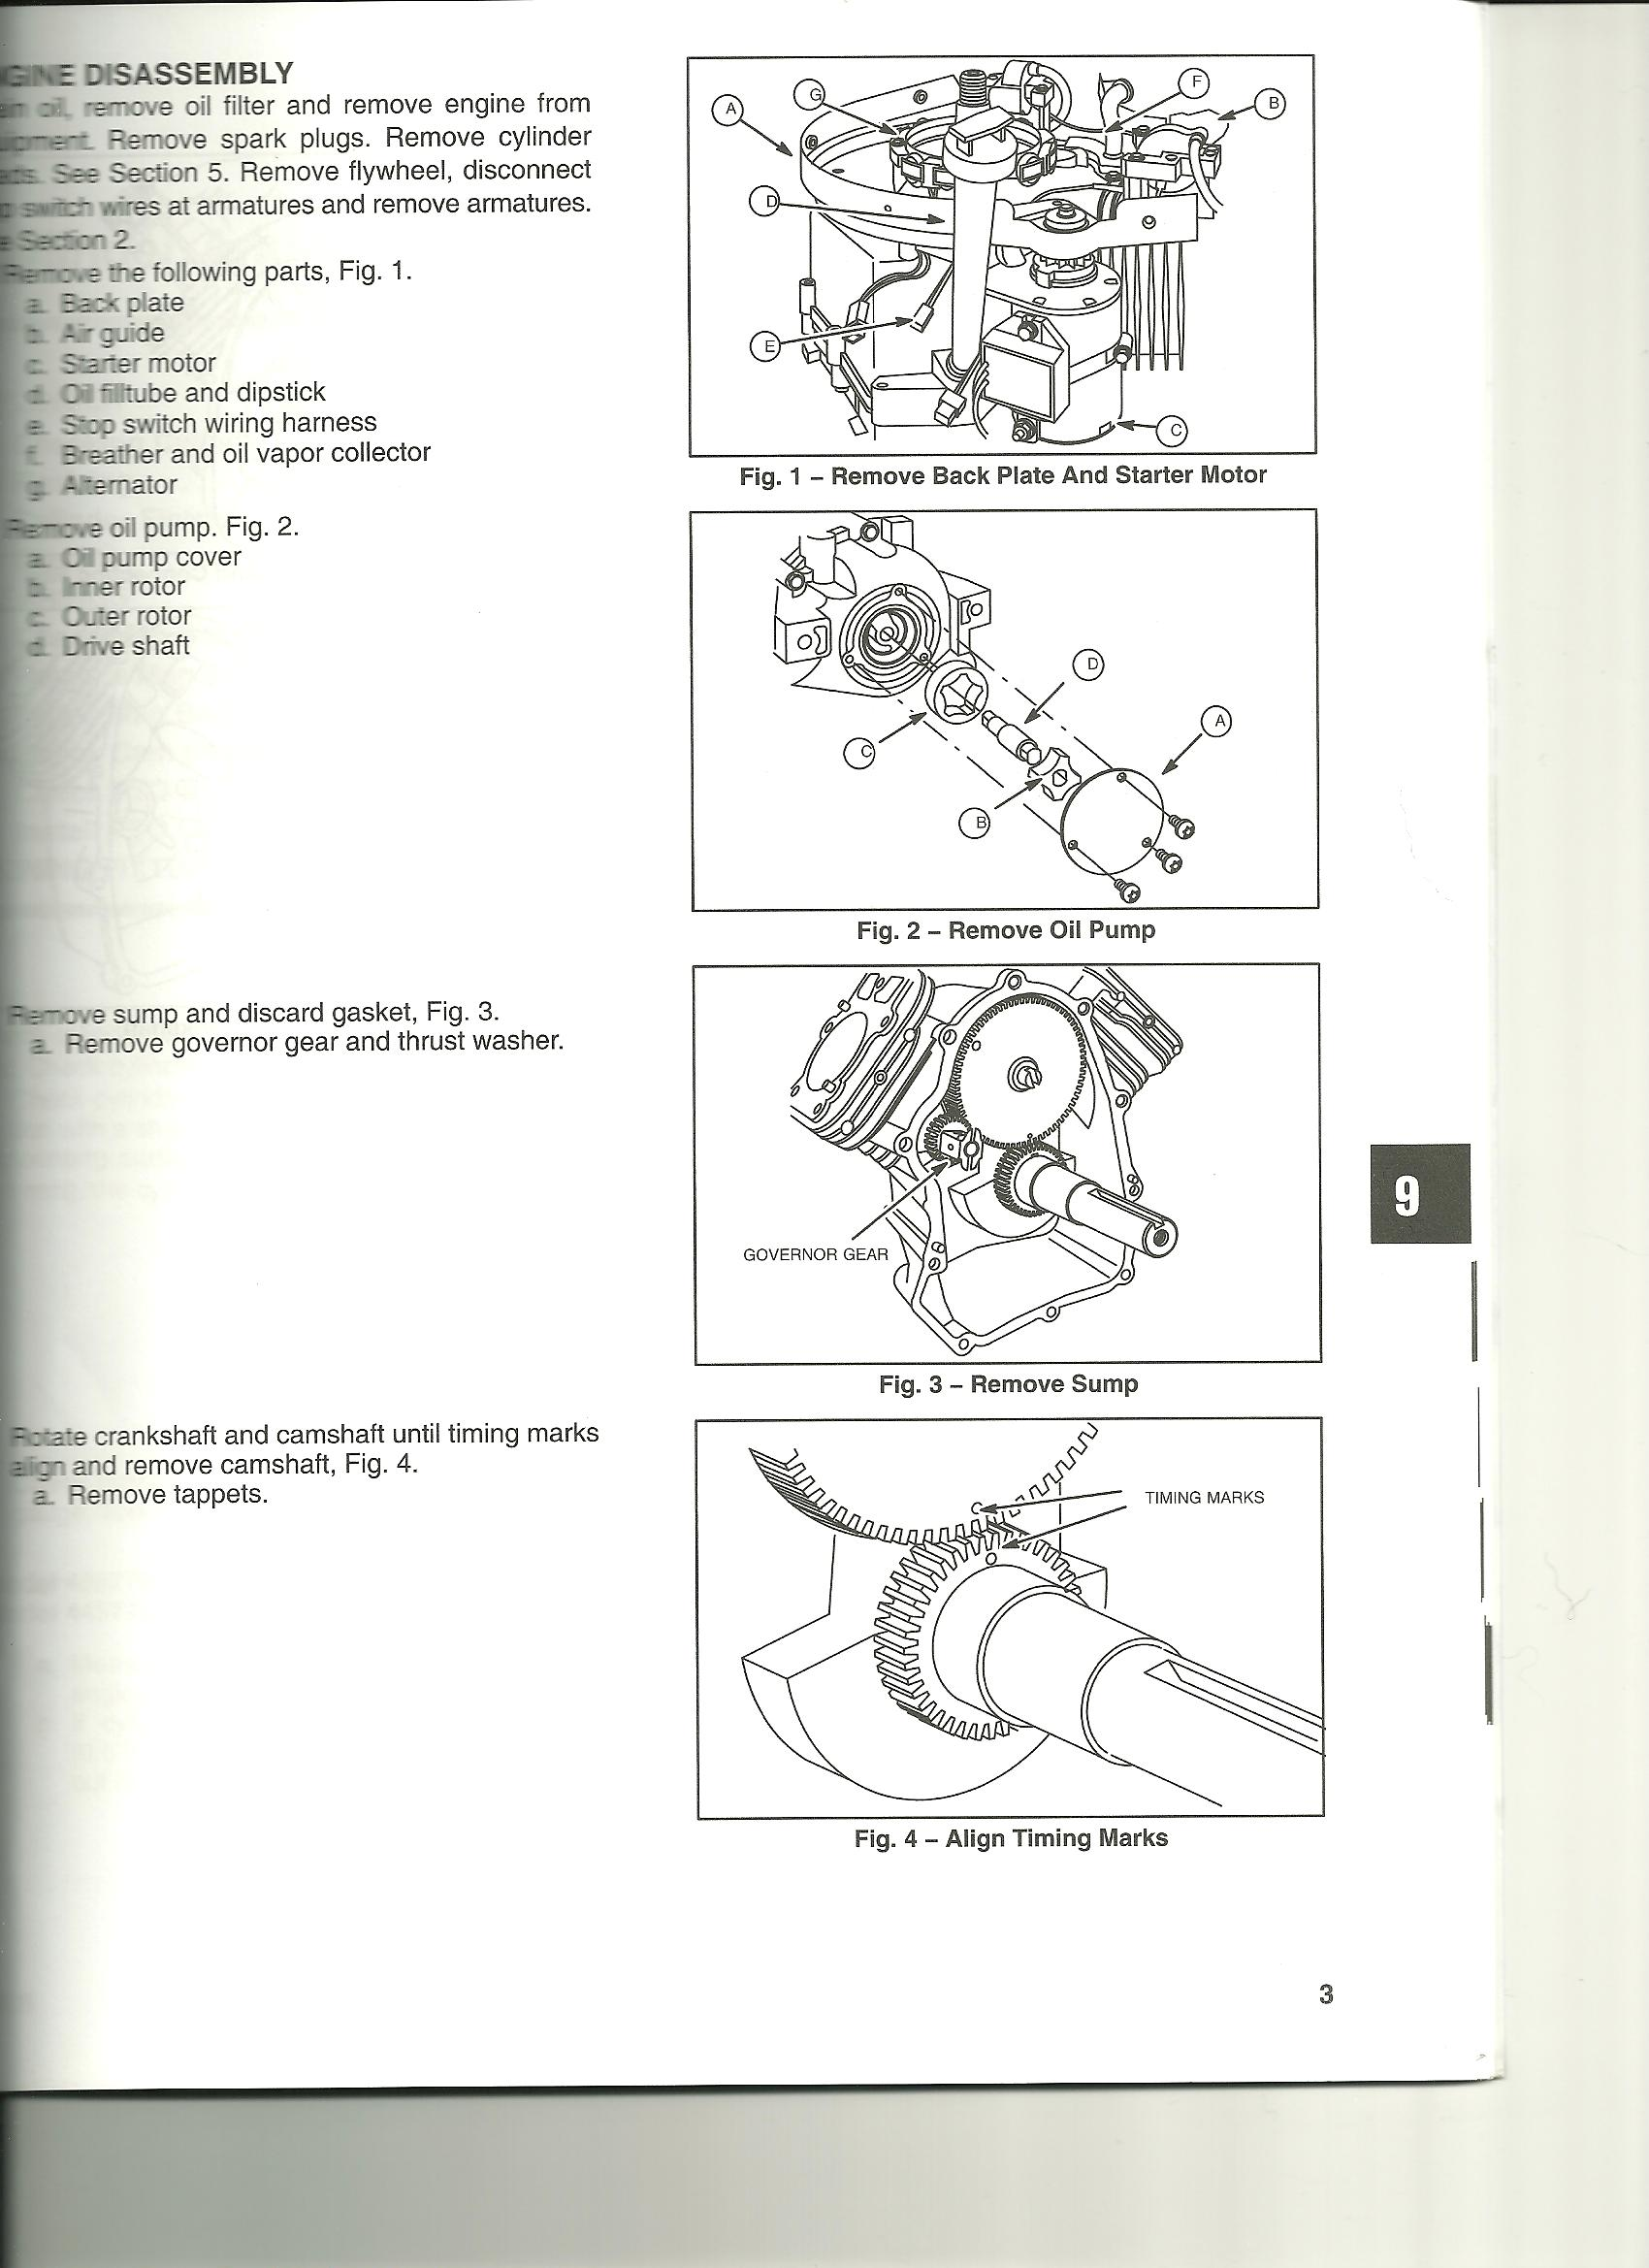 I have a b&S 20 hp intek v twin I pulled the engine and replaced the